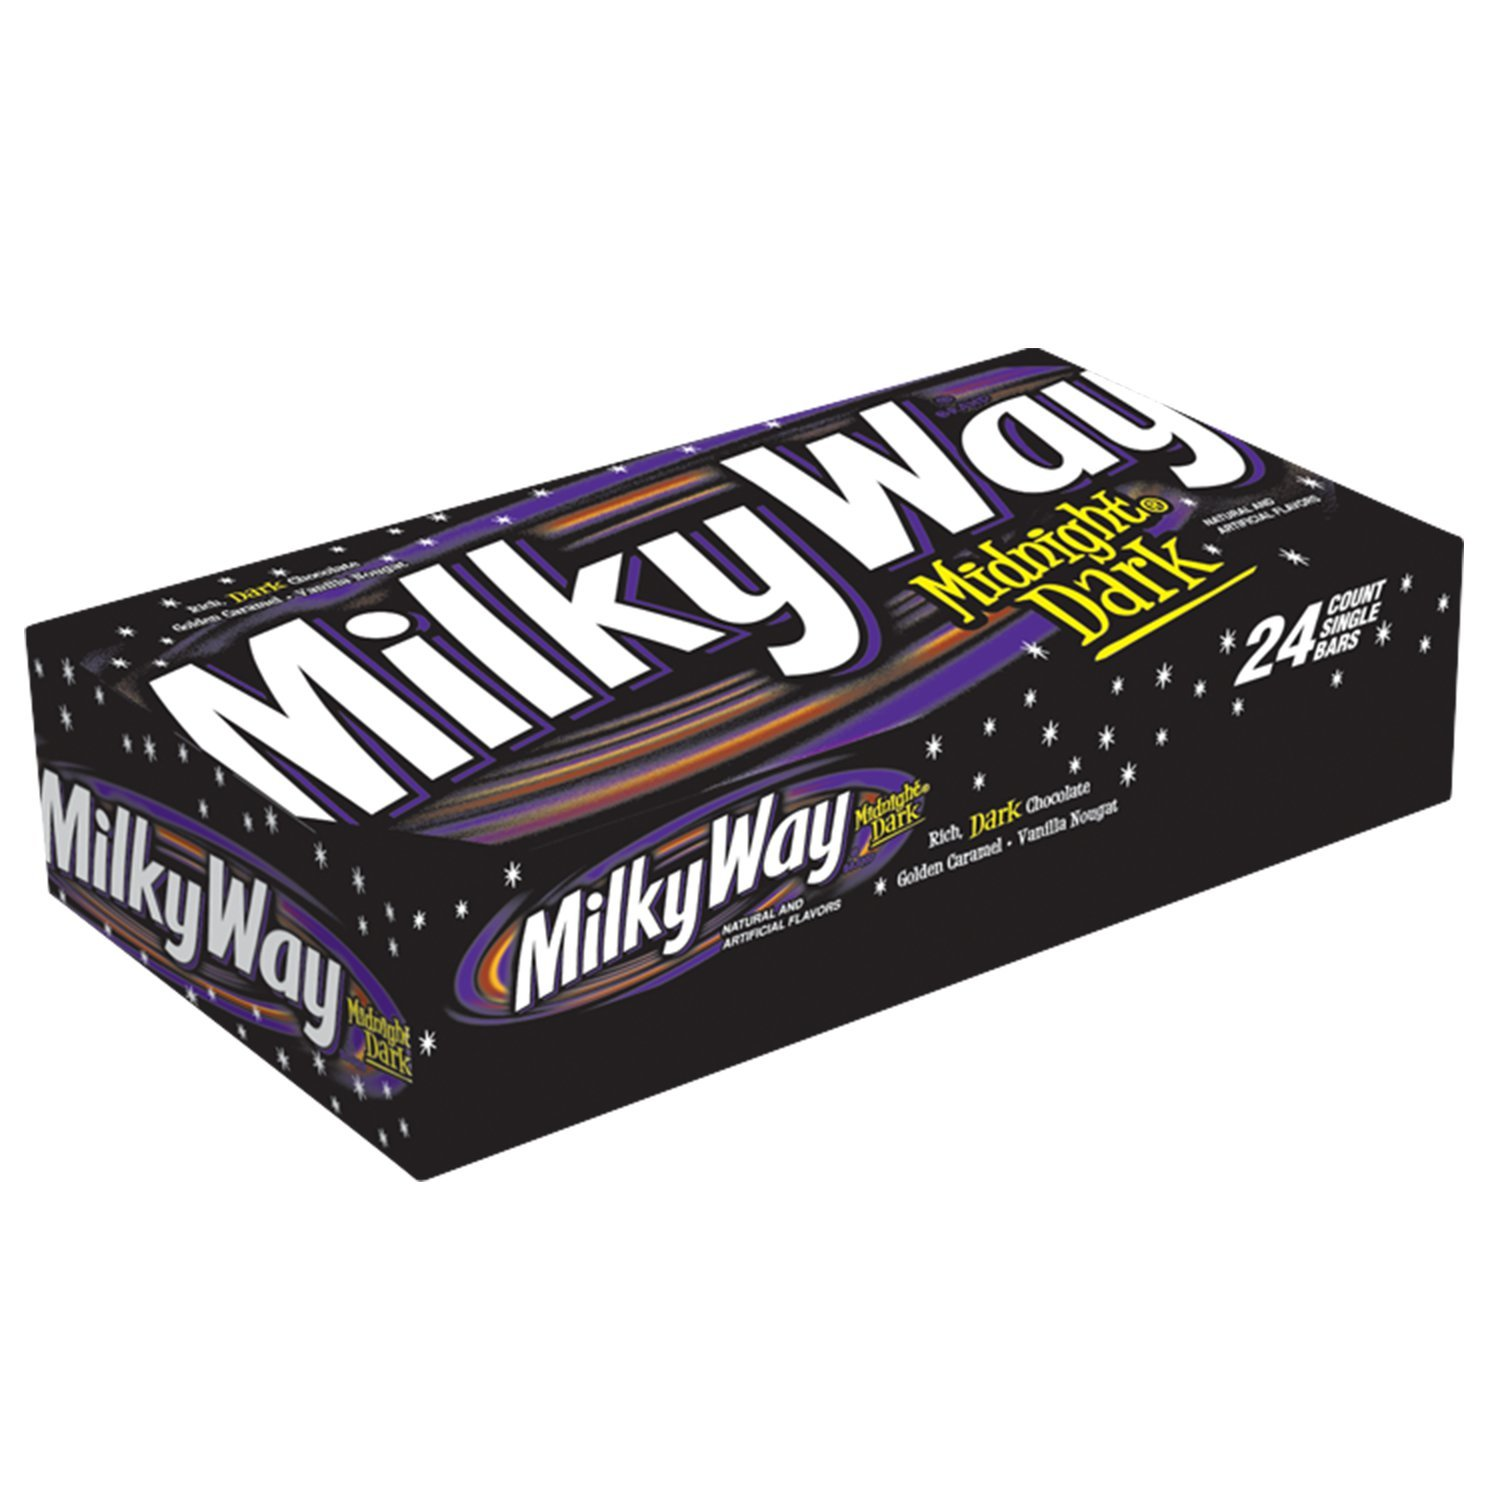 MILKY WAY-- Single Size Candy Bars--Midnight Dark Chocolate Caramel Nougat Candy Bars--Individually Sized--24-1.76oz. Individual Bars